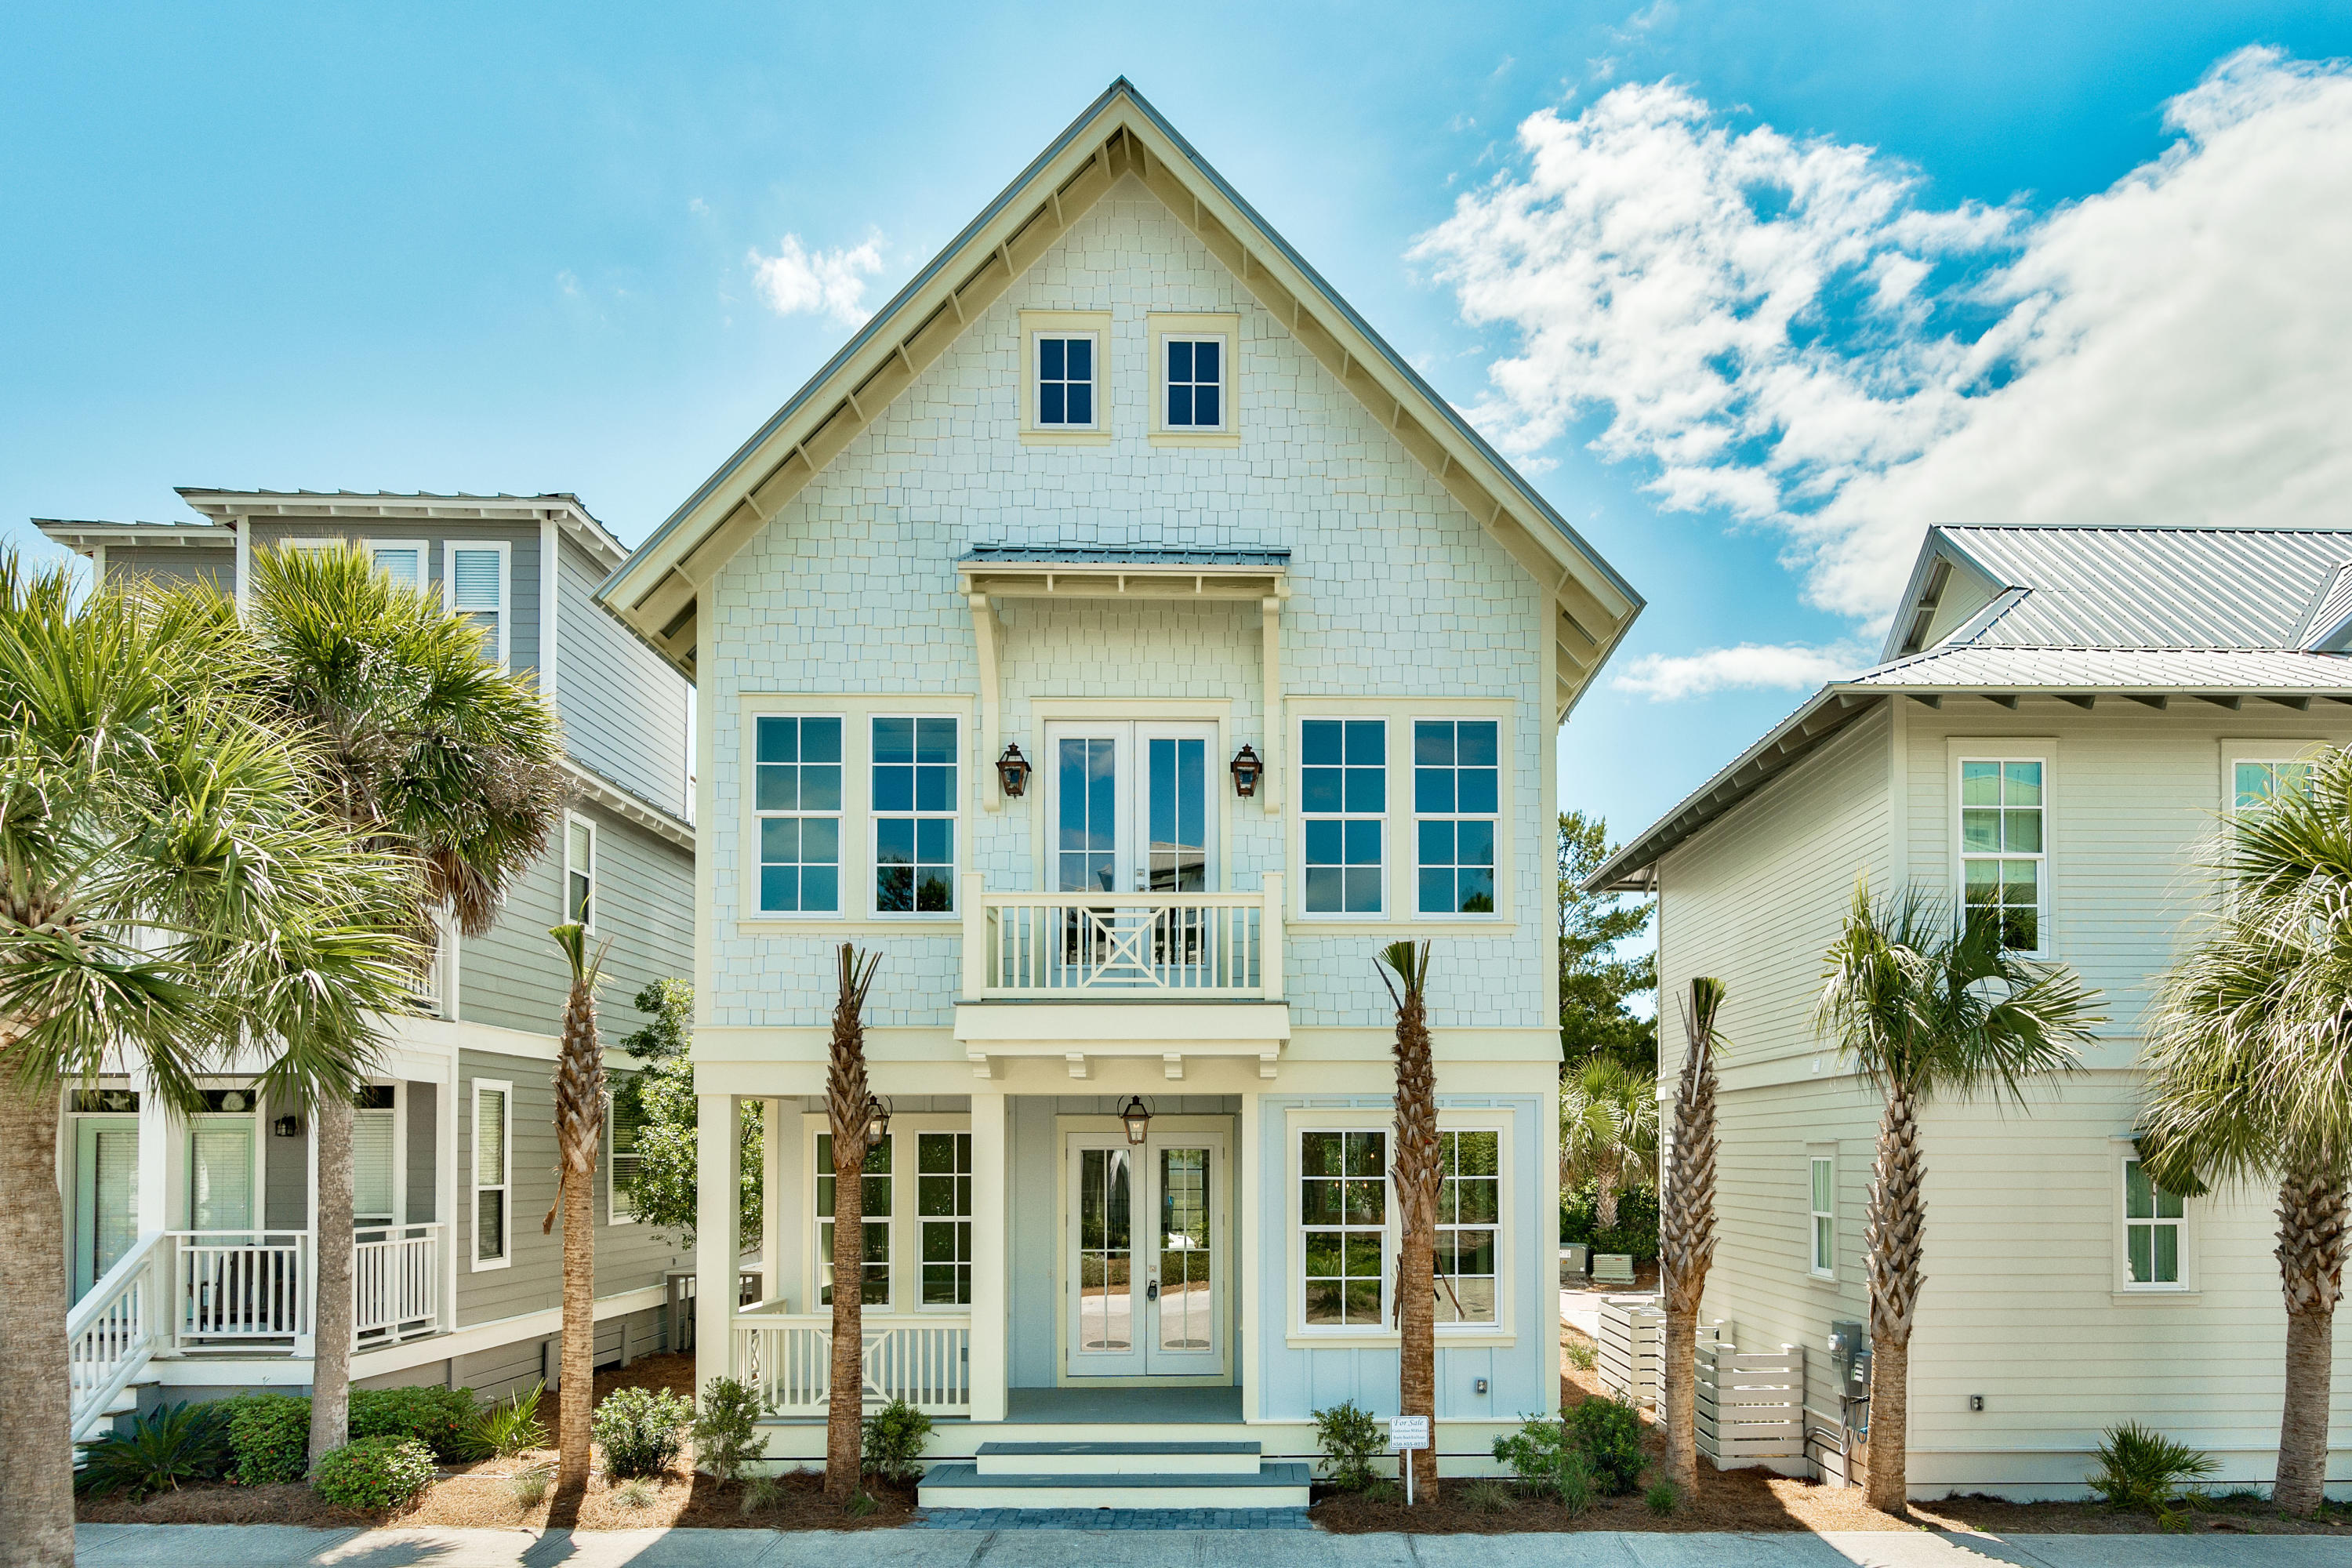 Photo of home for sale at 19 Lazy Day, Seacrest FL